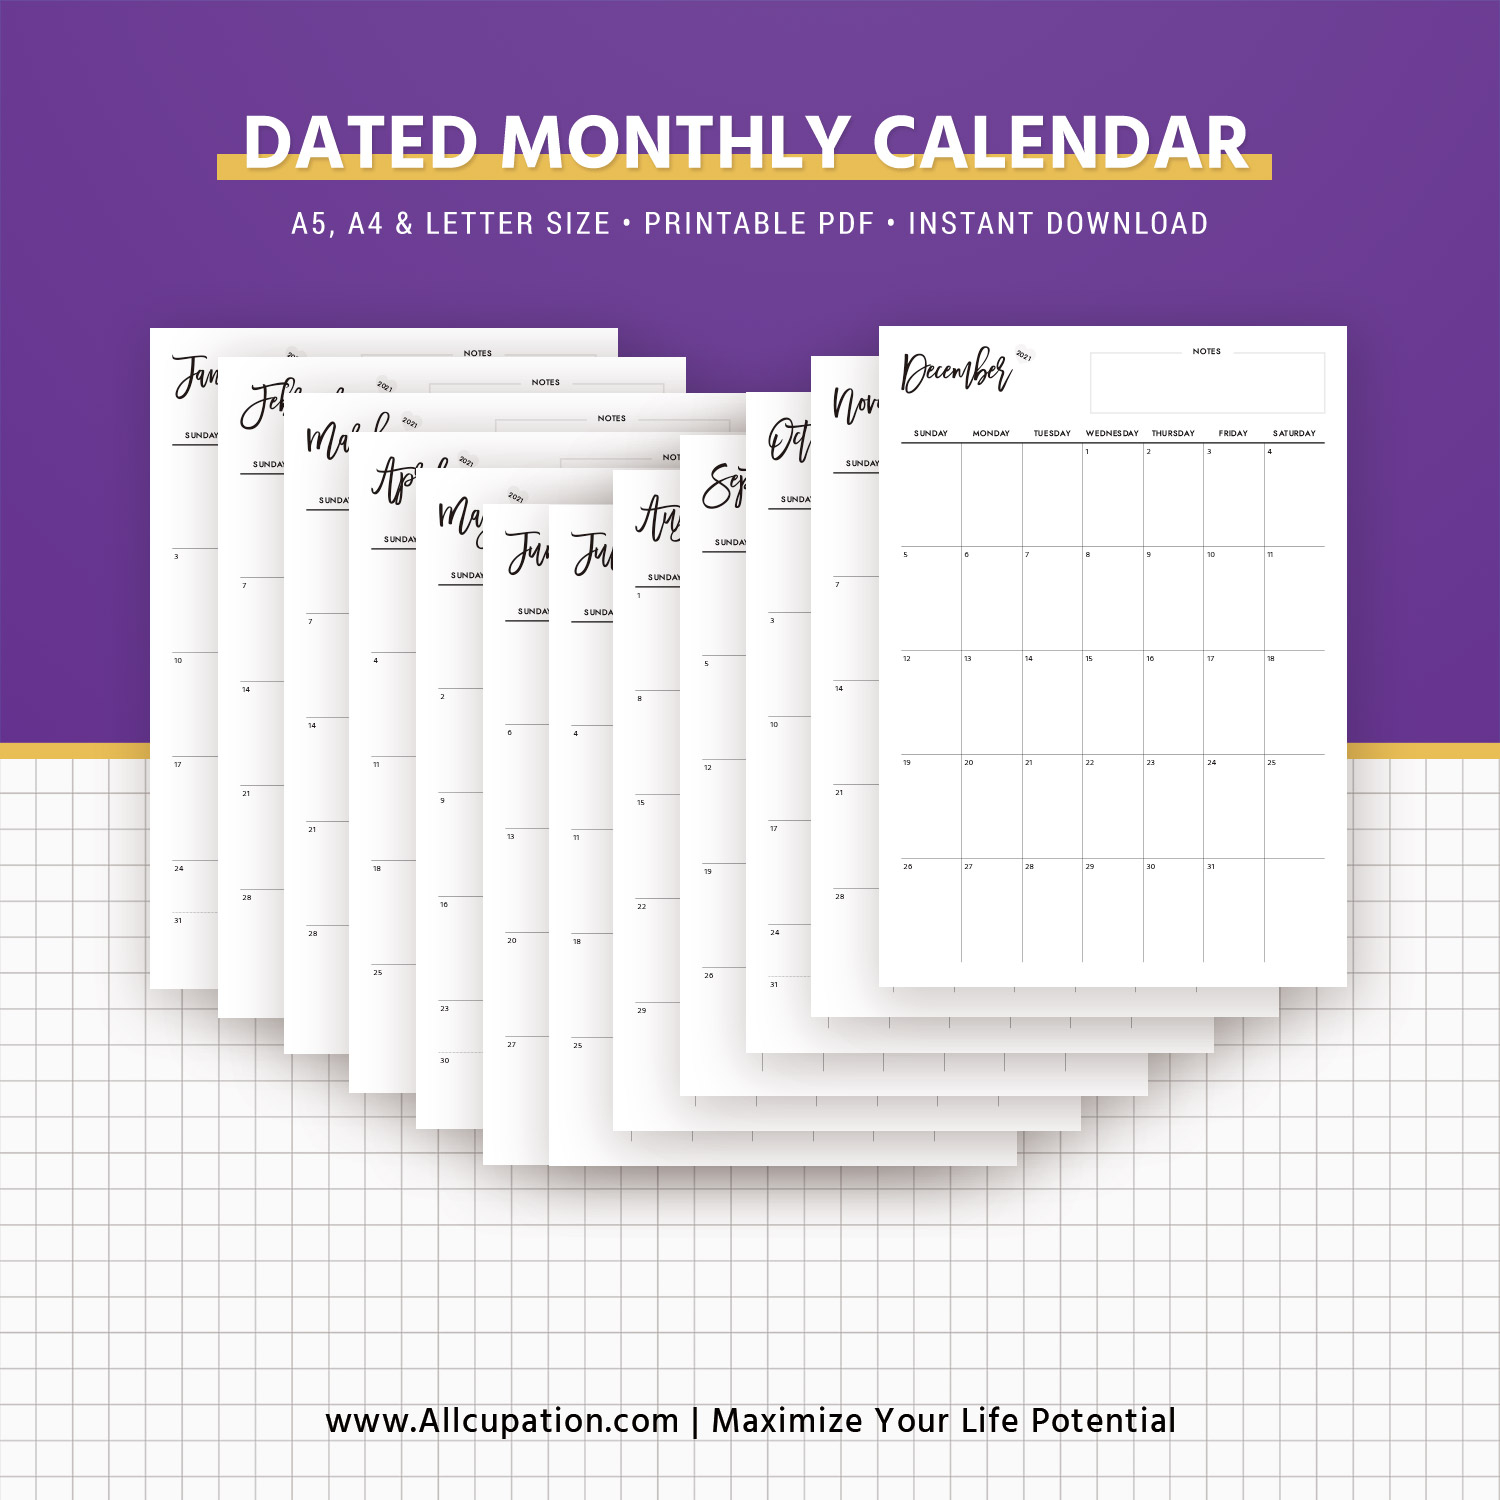 dated monthly calendar best planner printable planner inserts planner pages a5 a4 letter size monday and sunday start